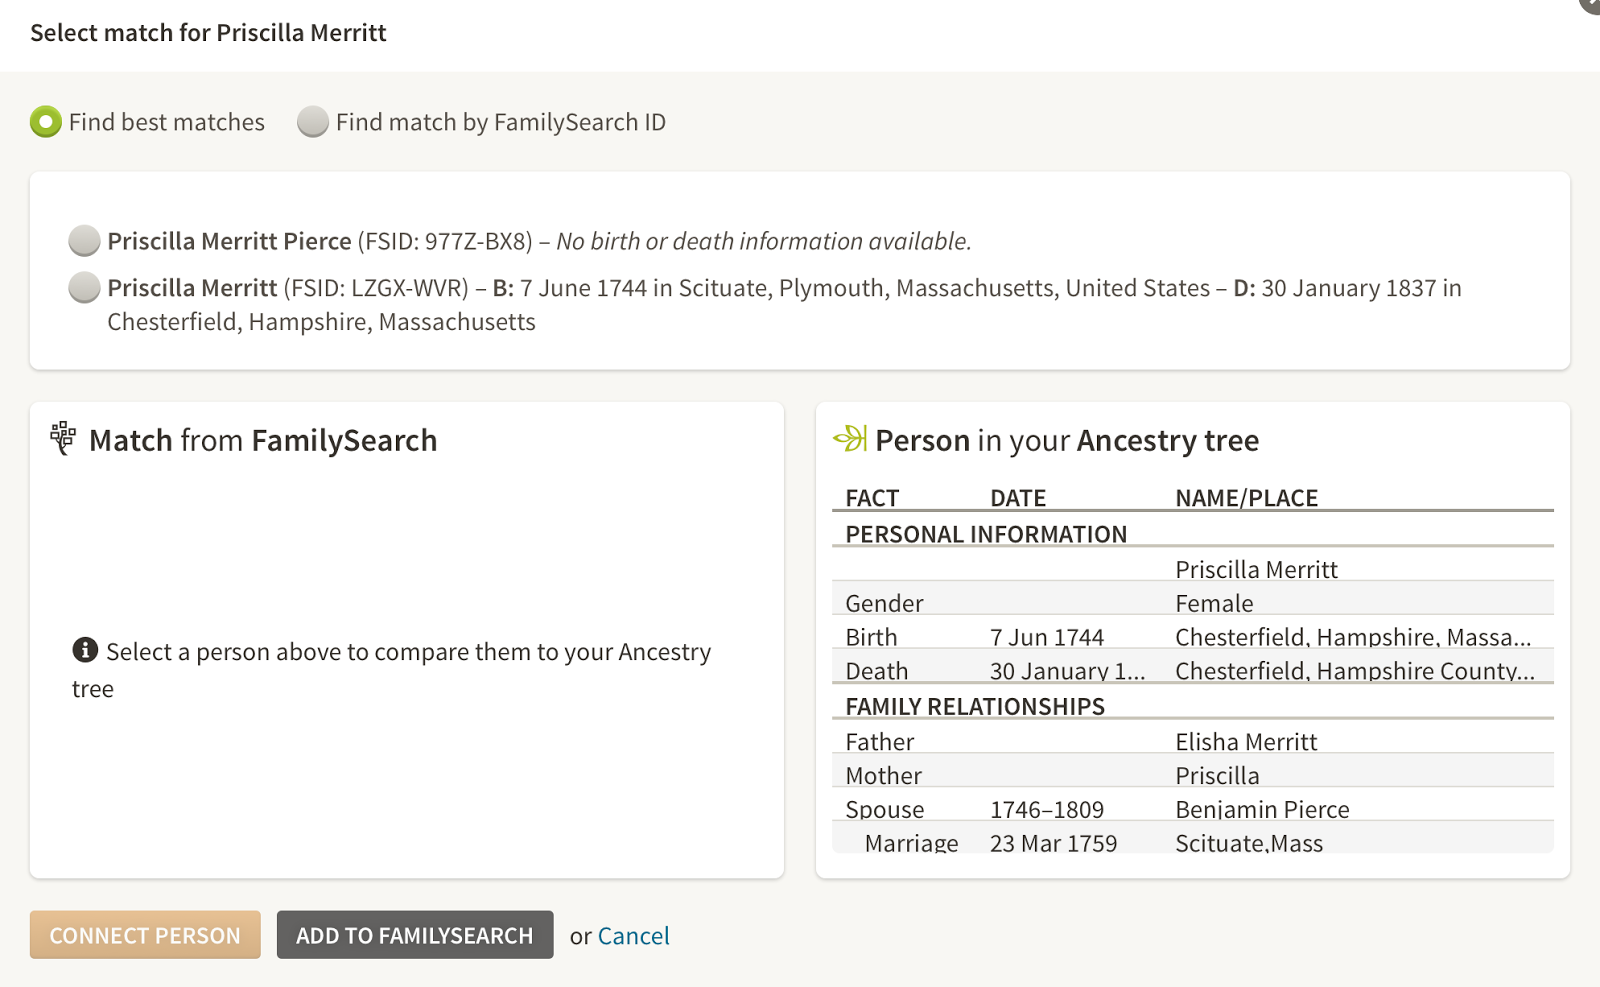 once you have connected the person a side by side comparison will appear familysearch information on the left ancestry information on the right